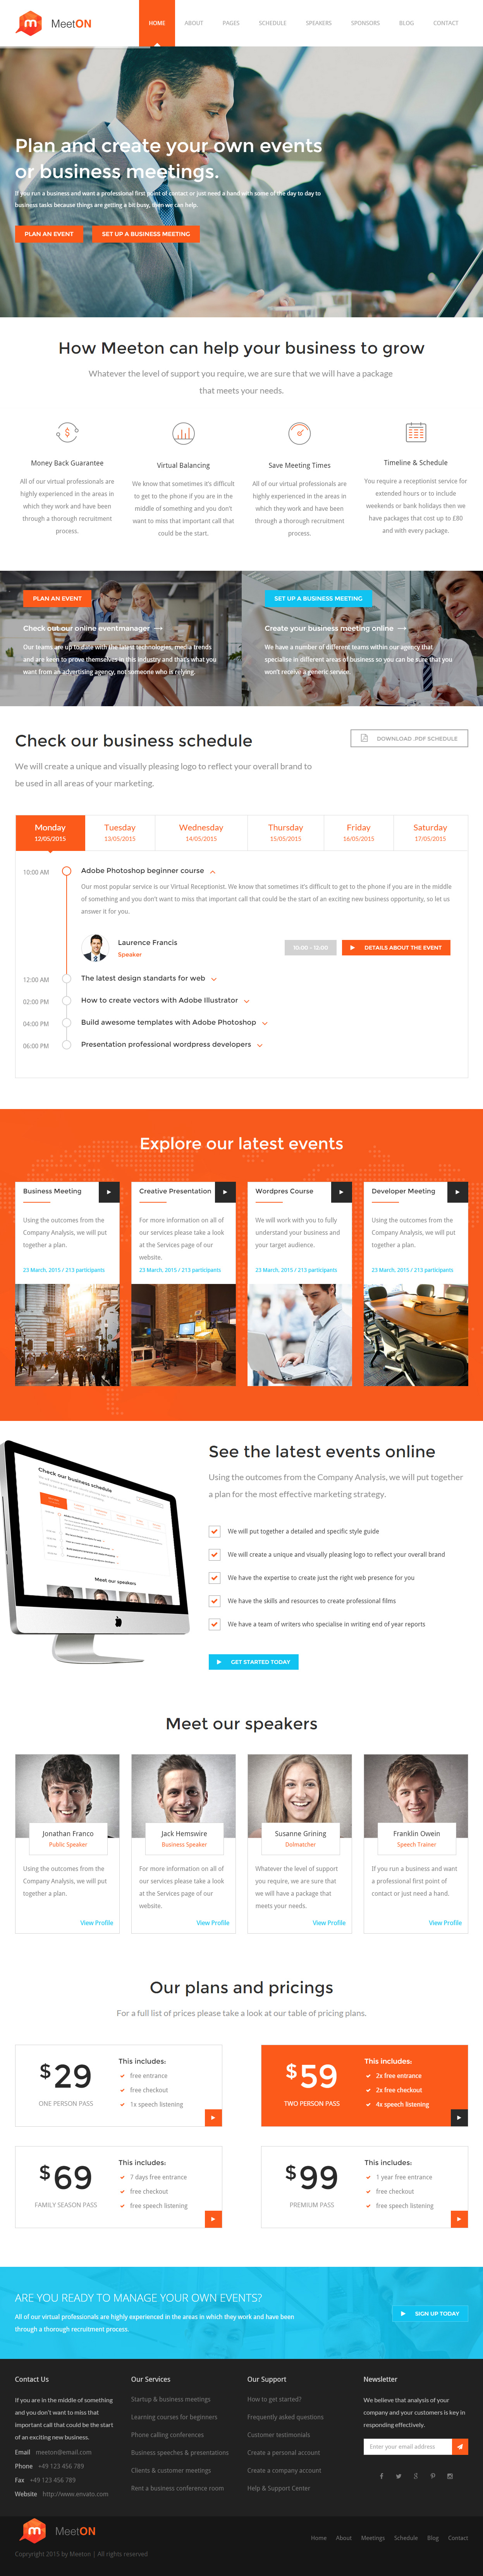 Meeton is Premium Responsive Retina #Conference #HTML5 #template. Bootstrap 3 Framework. Parallax Scrolling. Ajax Contact Form. Test free demo at: http://www.responsivemiracle.com/cms/meeton-premium-responsive-conference-event-html5-template/